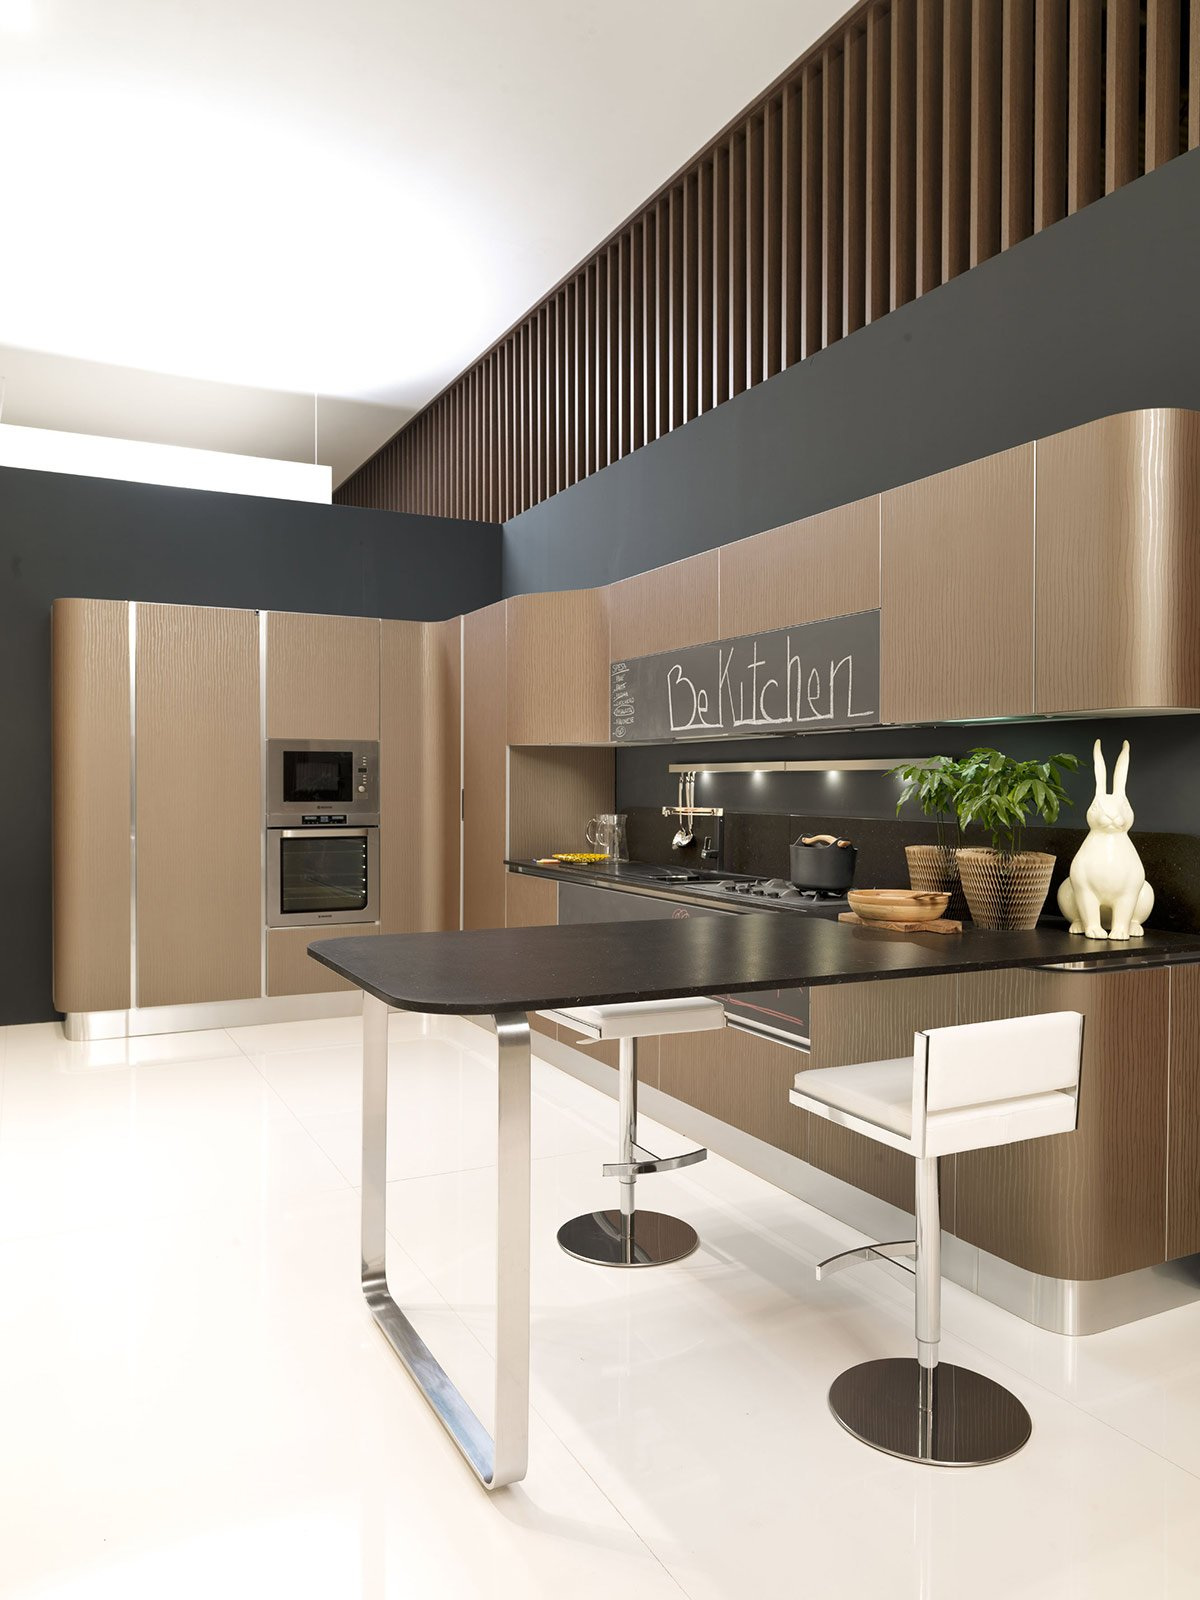 Best Del Tongo Cucine Opinioni Photos - Ideas & Design 2017 ...